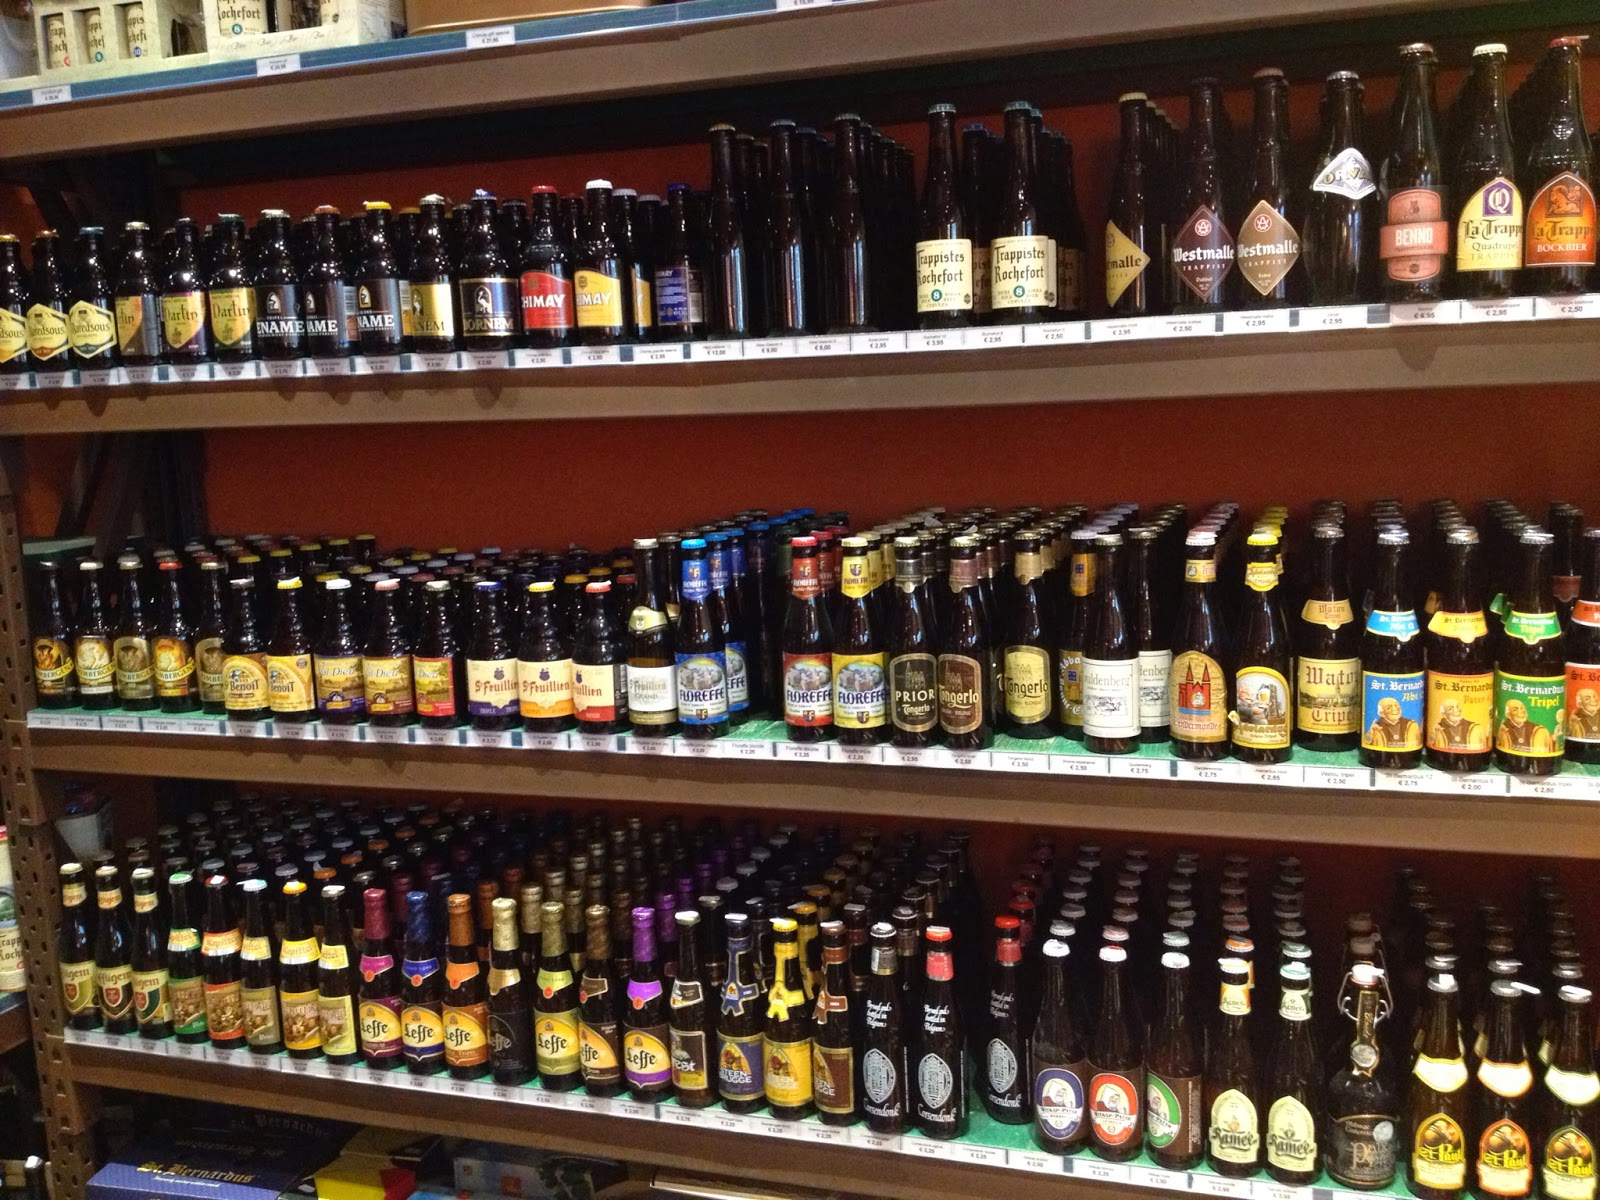 Brussels - Over 1000 different beers are brewed in Belgium